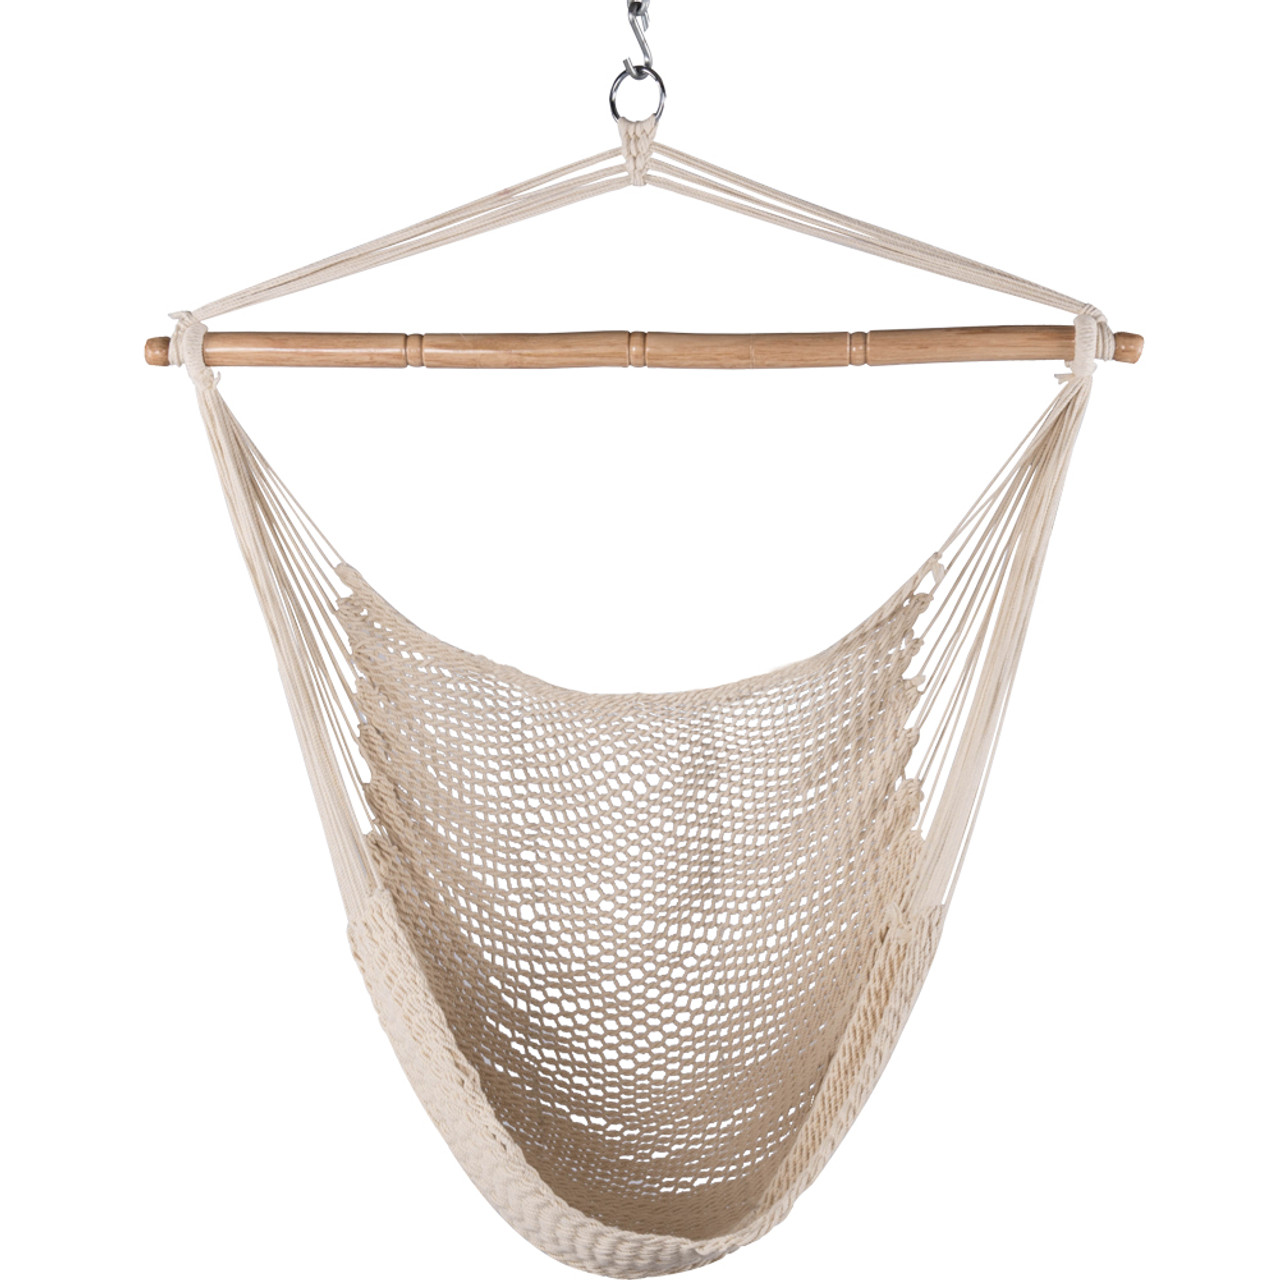 lazy daze hammocks hanging caribbean hammock chair soft spun cotton rope 40 inch cotton rope hanging swing chair with wood spreader bar natural  rh   sundaleoutdoor